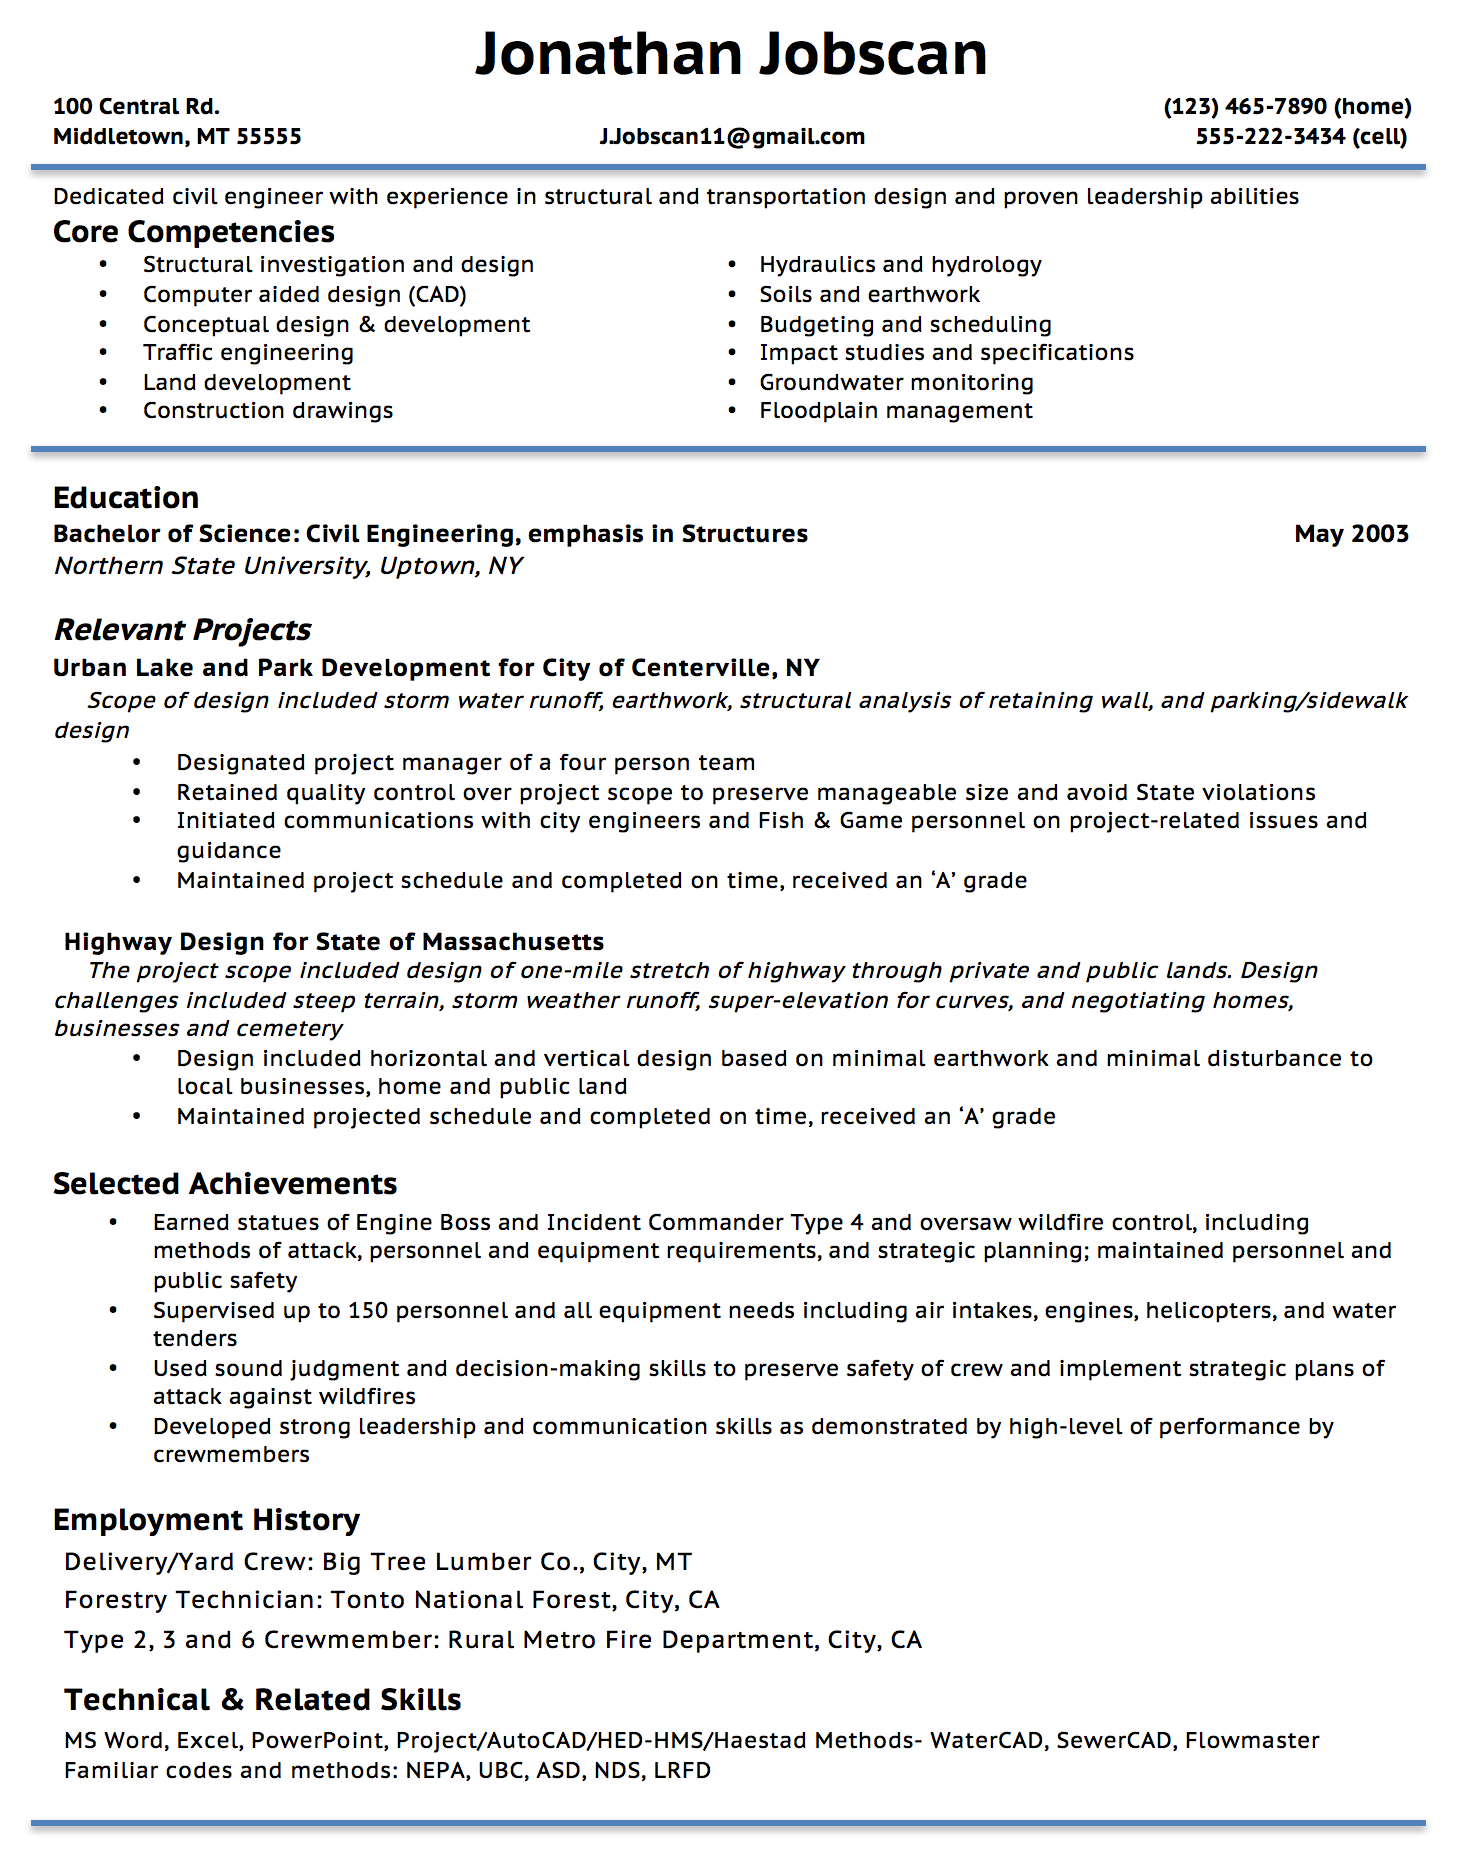 Opposenewapstandardsus  Winning Resume Writing Guide  Jobscan With Fascinating Example Of A Functional Resume Format With Appealing Film Editor Resume Also Helpdesk Resume In Addition Examples Of Resumes For Teachers And Job Resume Builder As Well As Resume Services Nj Additionally Leadership Experience Resume From Jobscanco With Opposenewapstandardsus  Fascinating Resume Writing Guide  Jobscan With Appealing Example Of A Functional Resume Format And Winning Film Editor Resume Also Helpdesk Resume In Addition Examples Of Resumes For Teachers From Jobscanco